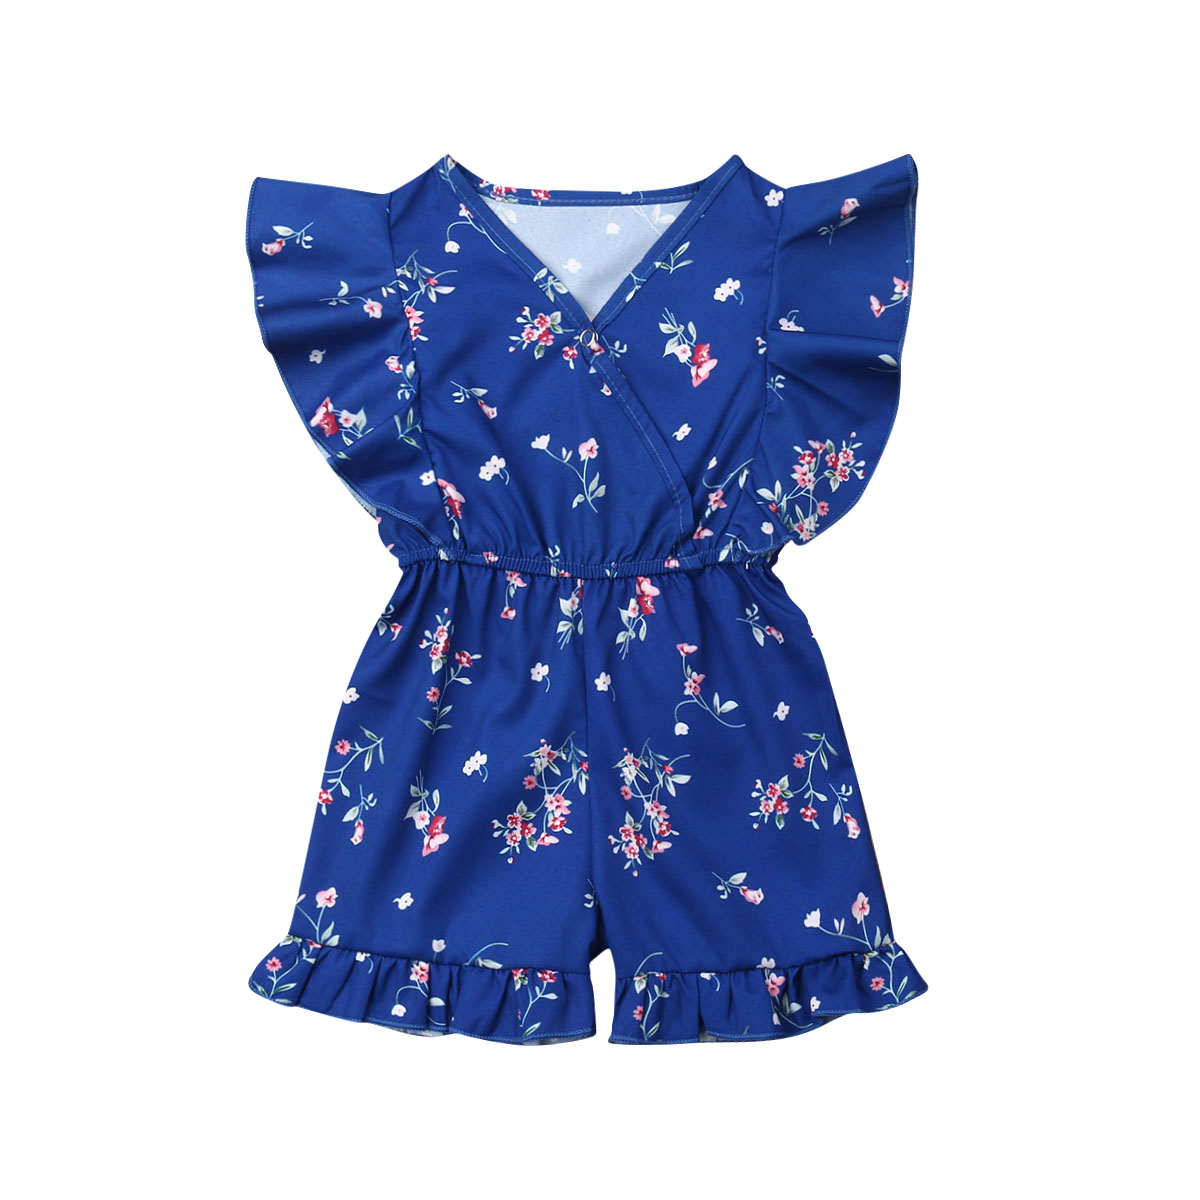 Pudcoco Newborn Baby Girls Ruffle Floral Short Sleeve   Romper   Jumpsuit Sunsuit Outfit